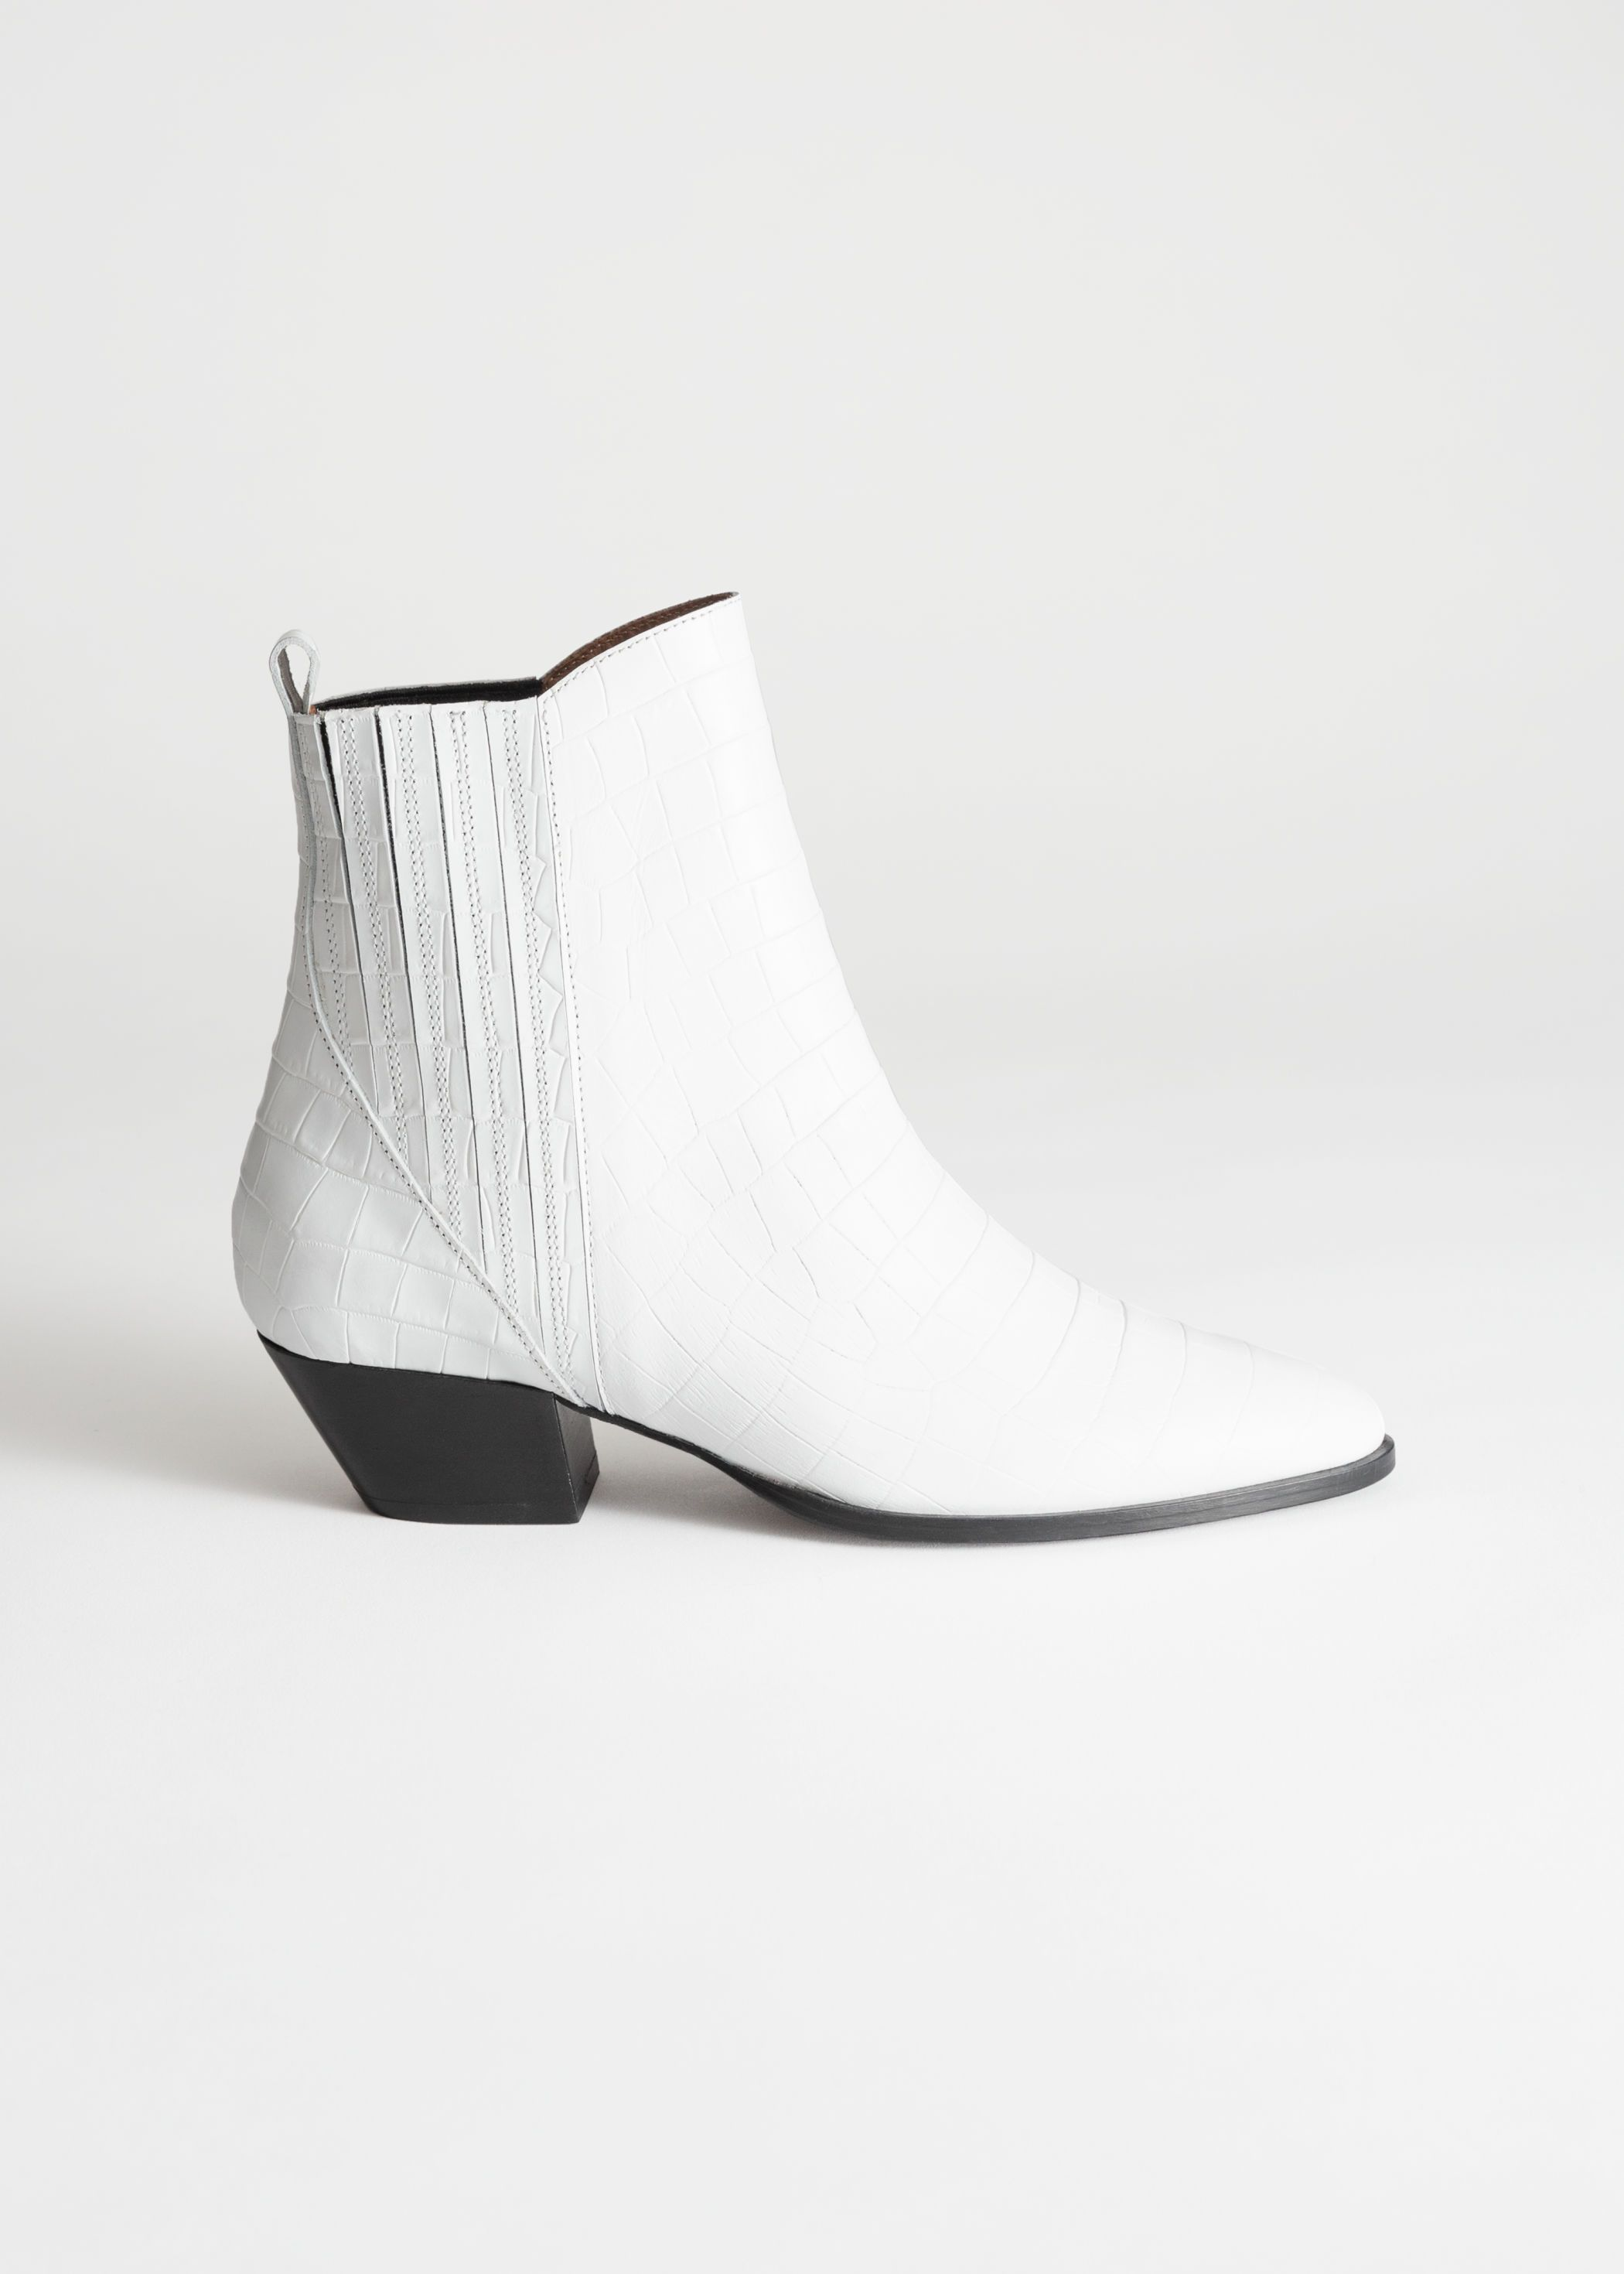 b40956695c3 Croc Embossed Low Cowboy Boots in 2019 | Shoes | Boots, Shoe boots ...